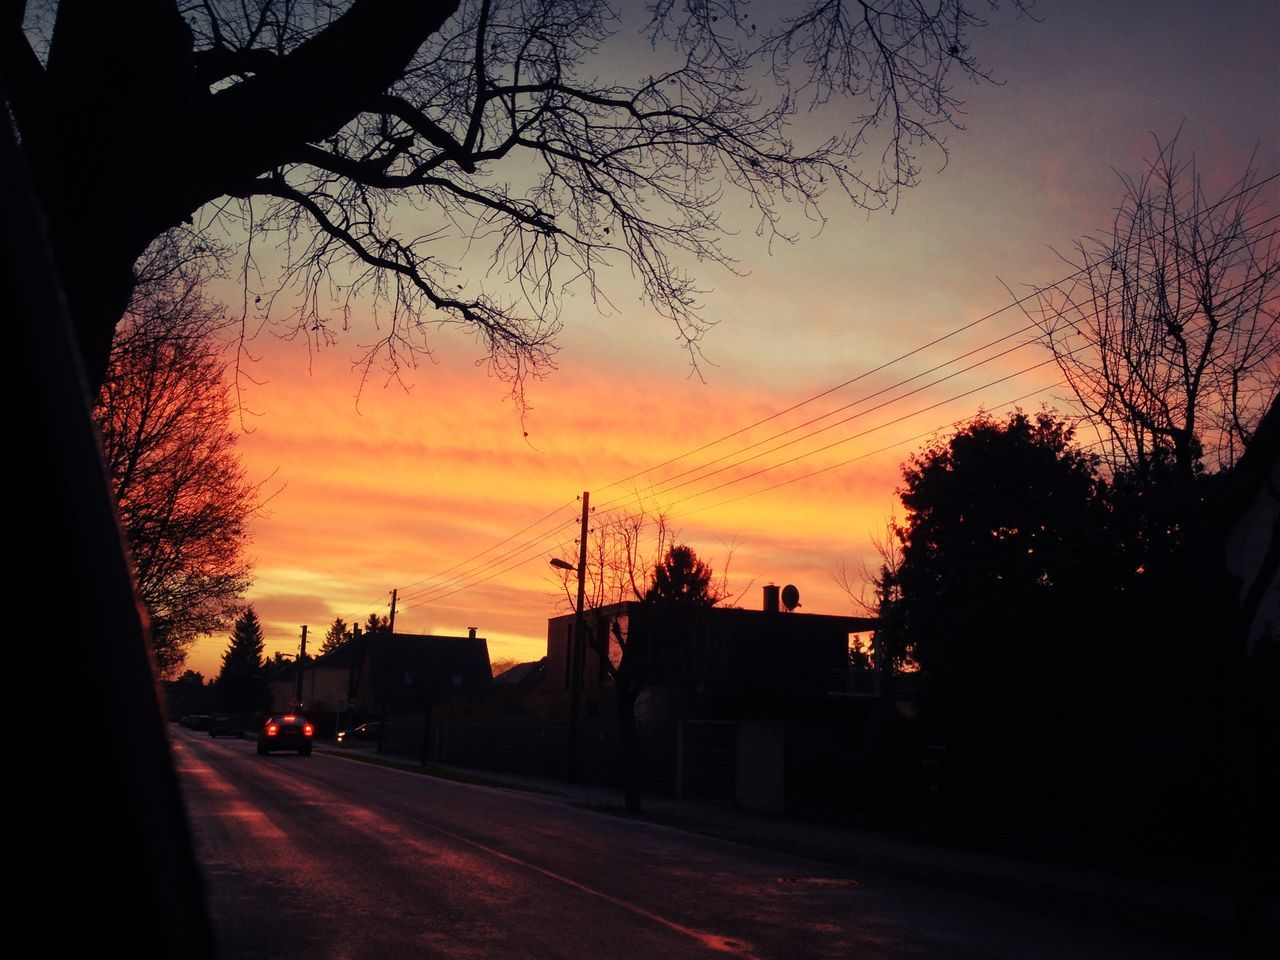 sunset, silhouette, tree, sky, orange color, car, road, transportation, land vehicle, no people, built structure, cloud - sky, nature, beauty in nature, architecture, outdoors, bare tree, electricity pylon, building exterior, city